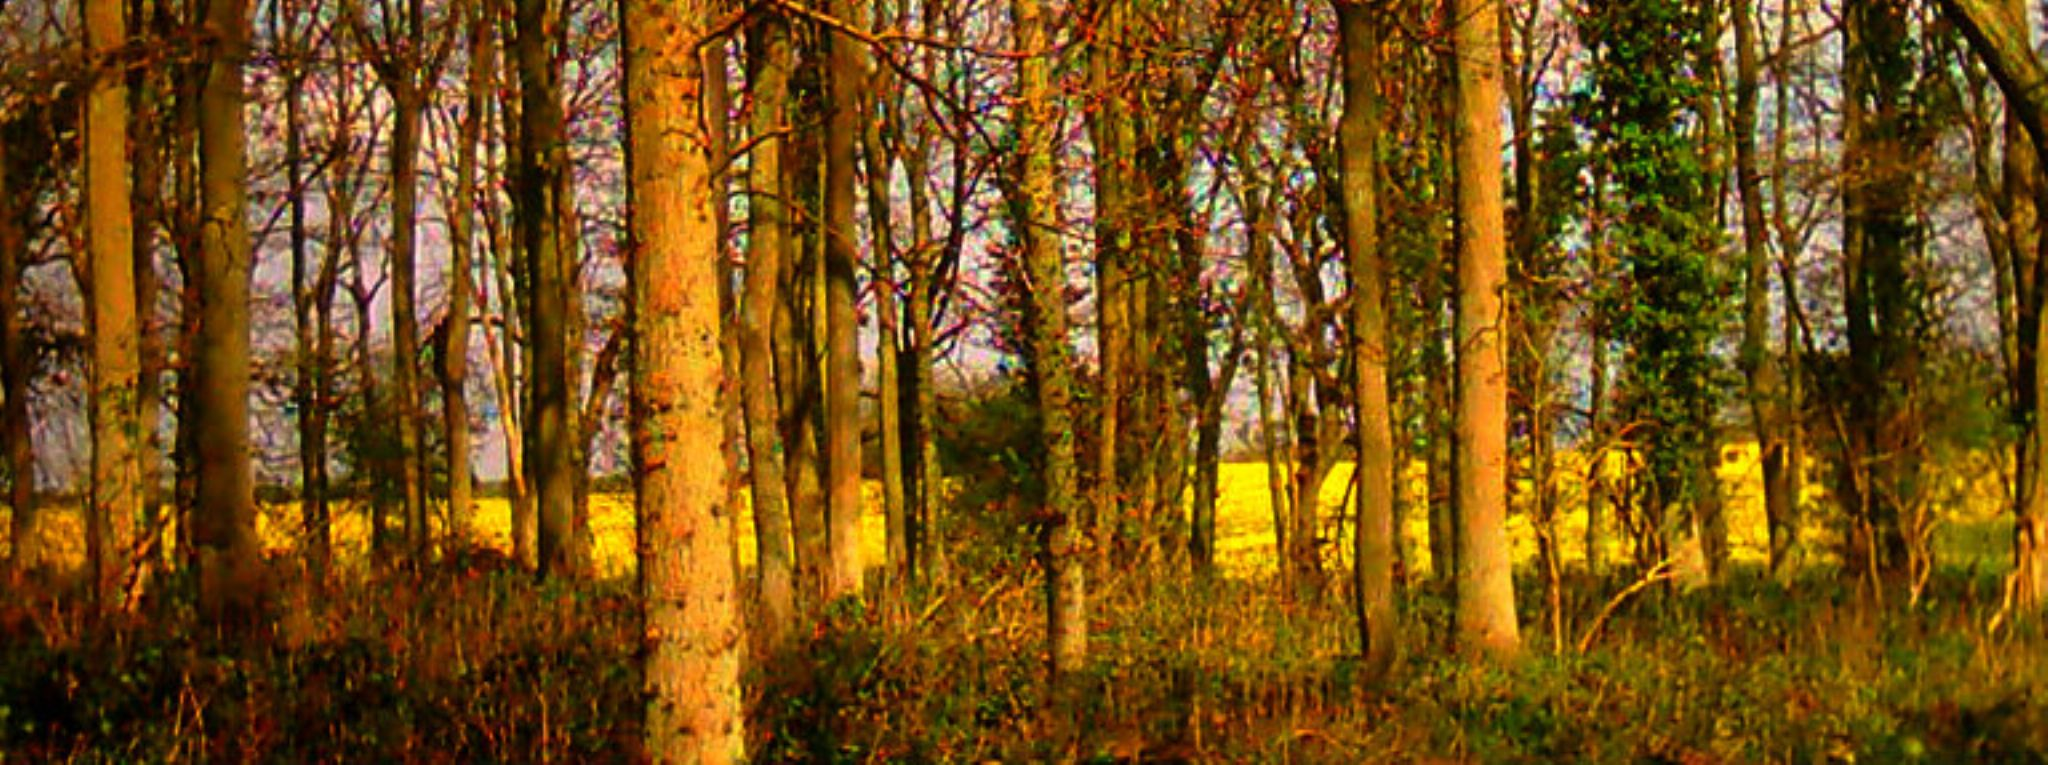 lincolnshire wood england by chris.adams.3557